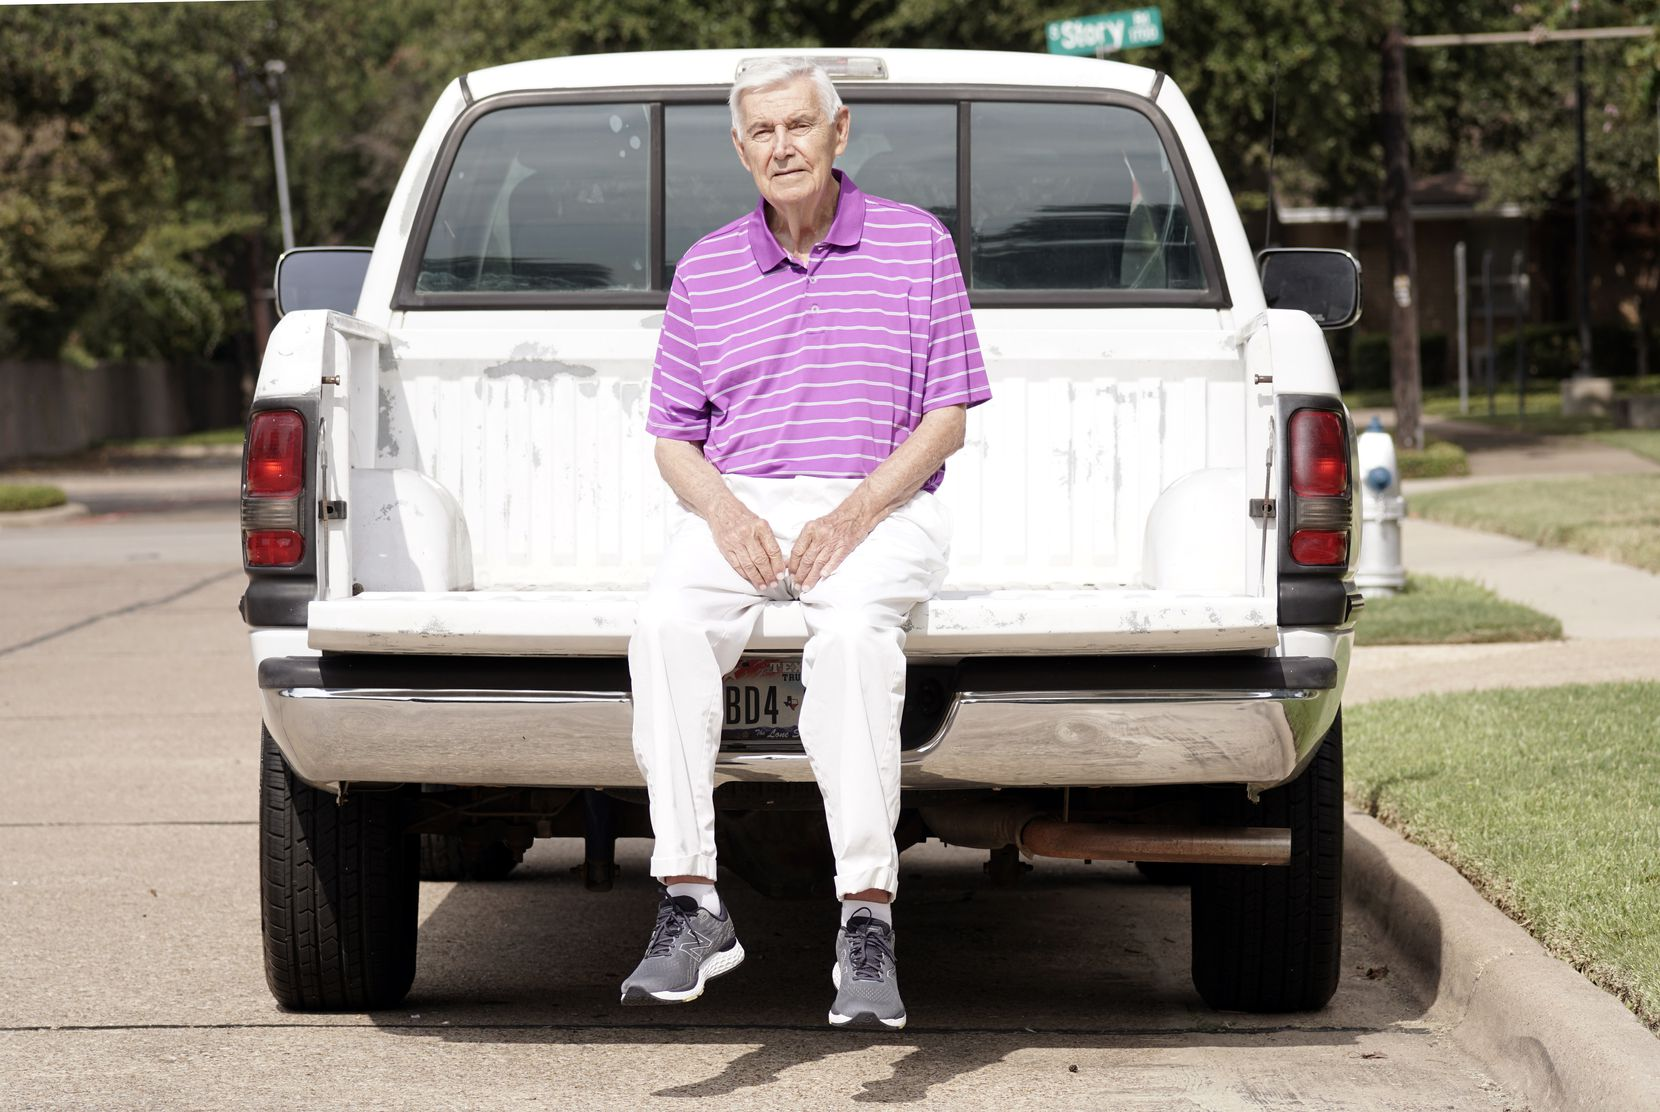 Don Nentwig, 84, beat the odds with his speedy recovery from a hip fracture.